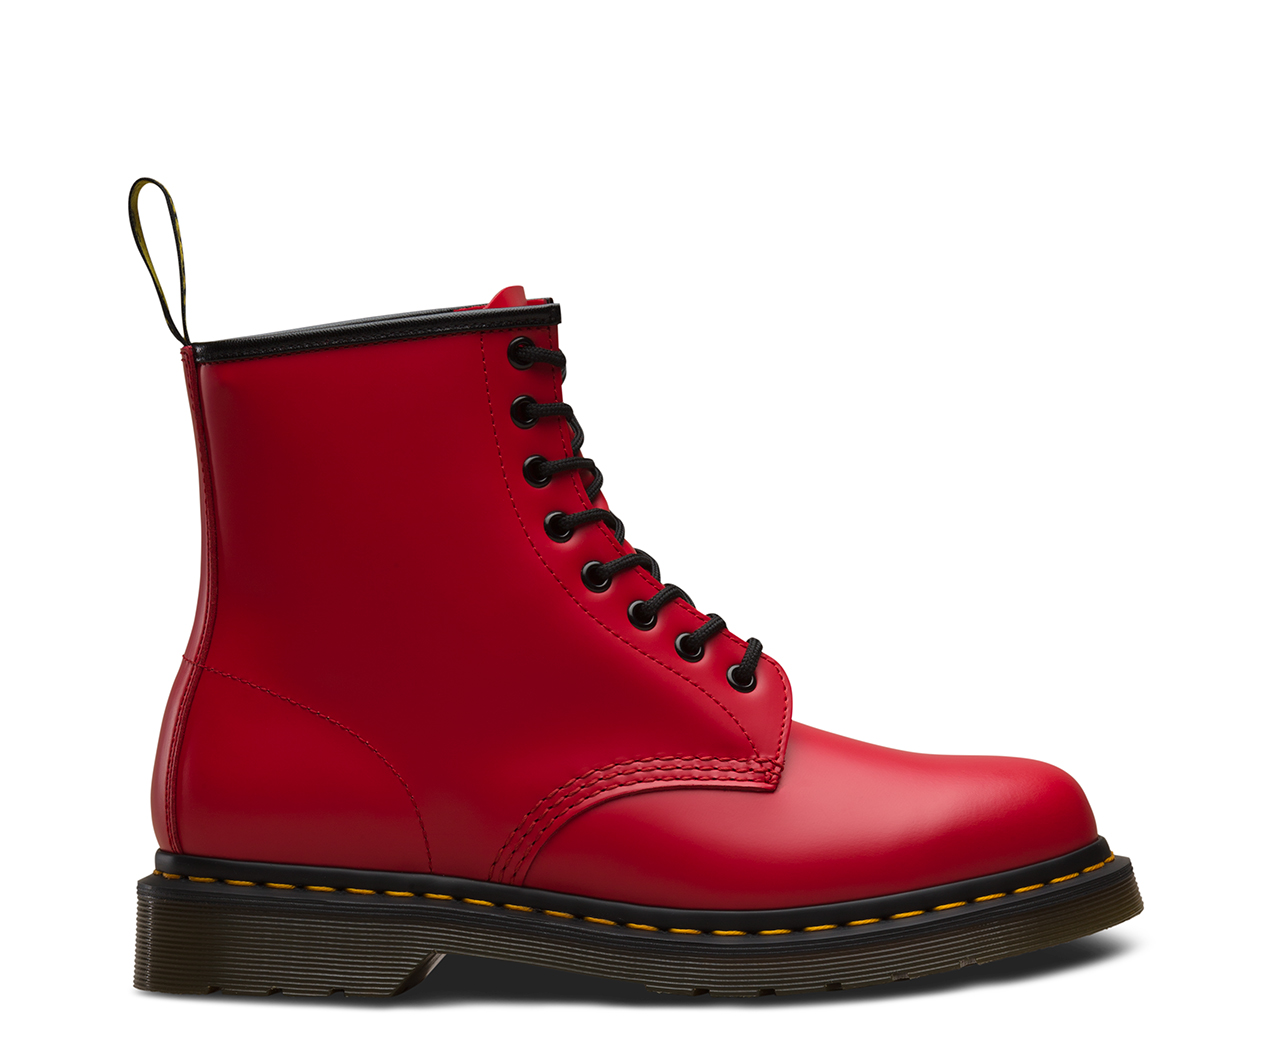 86a3f853eed 1460 SMOOTH | Women's Boots & Shoes | Canada